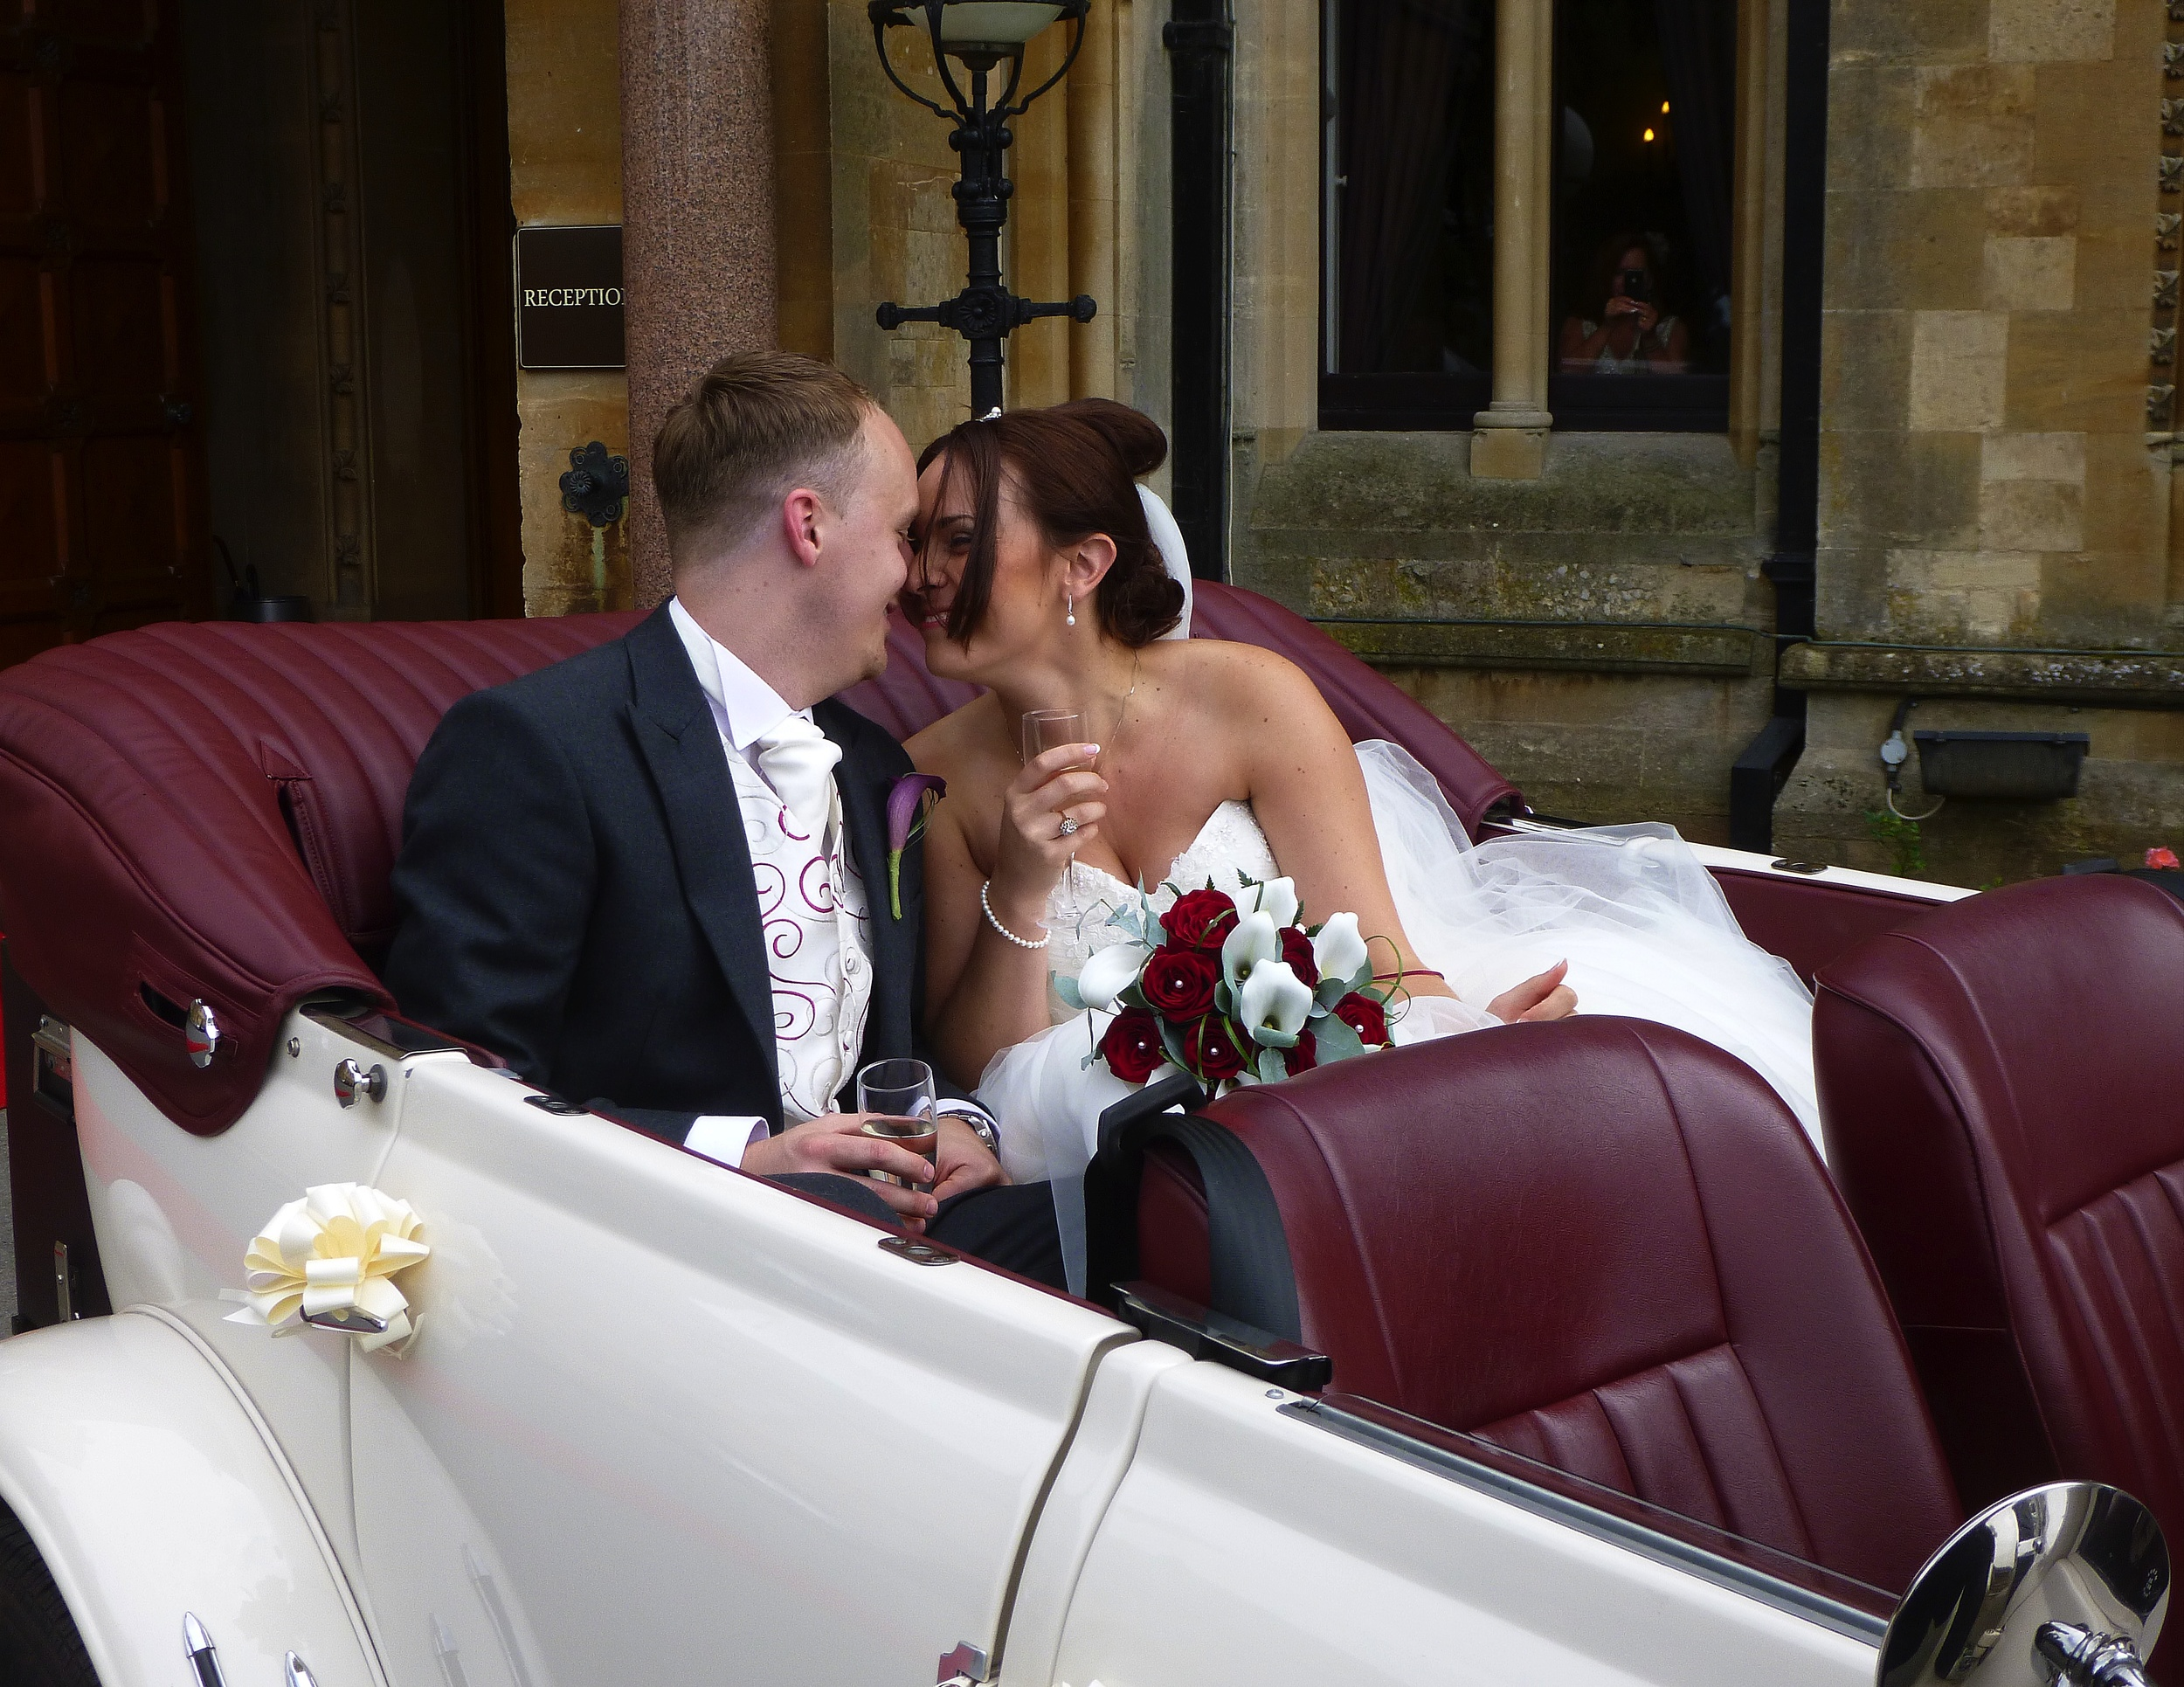 Arriving back at Walton Hall following the short drive for photos. Tiffany and Lewis make the most of some private time together prior to the festivities with guests in the Hall.